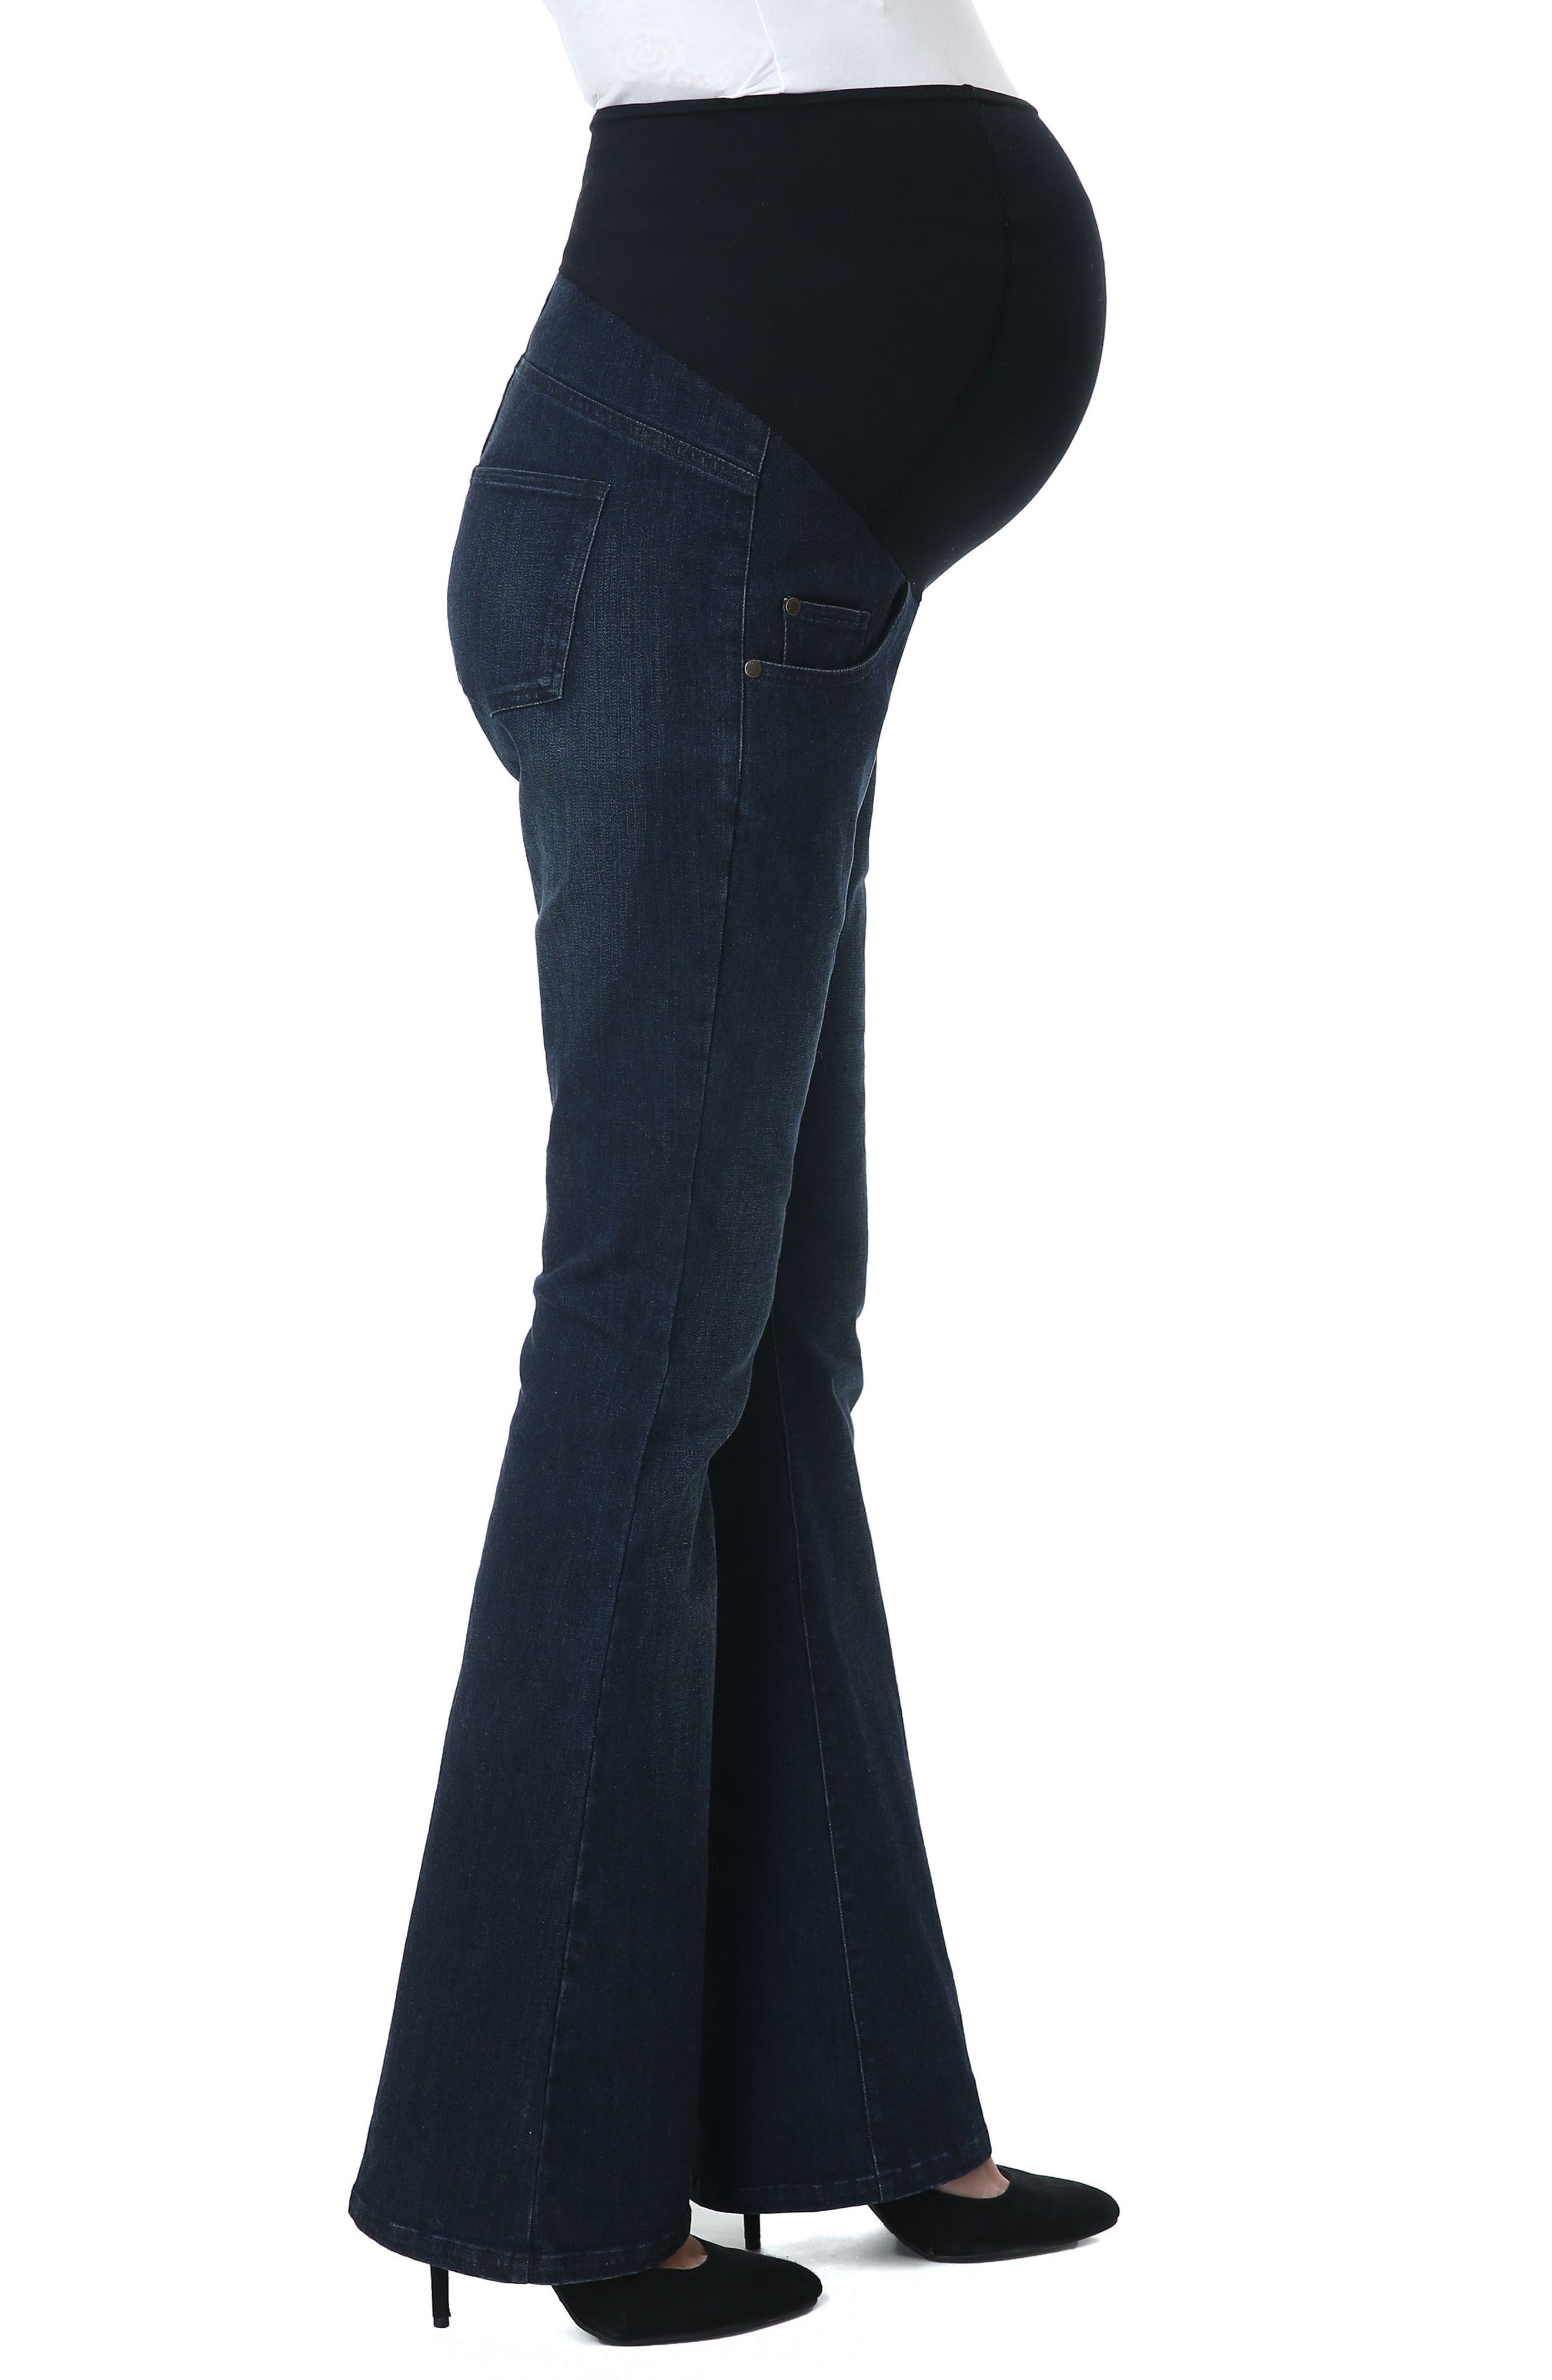 Leni Maternity Bootcut Jeans,                             Alternate thumbnail 3, color,                             010